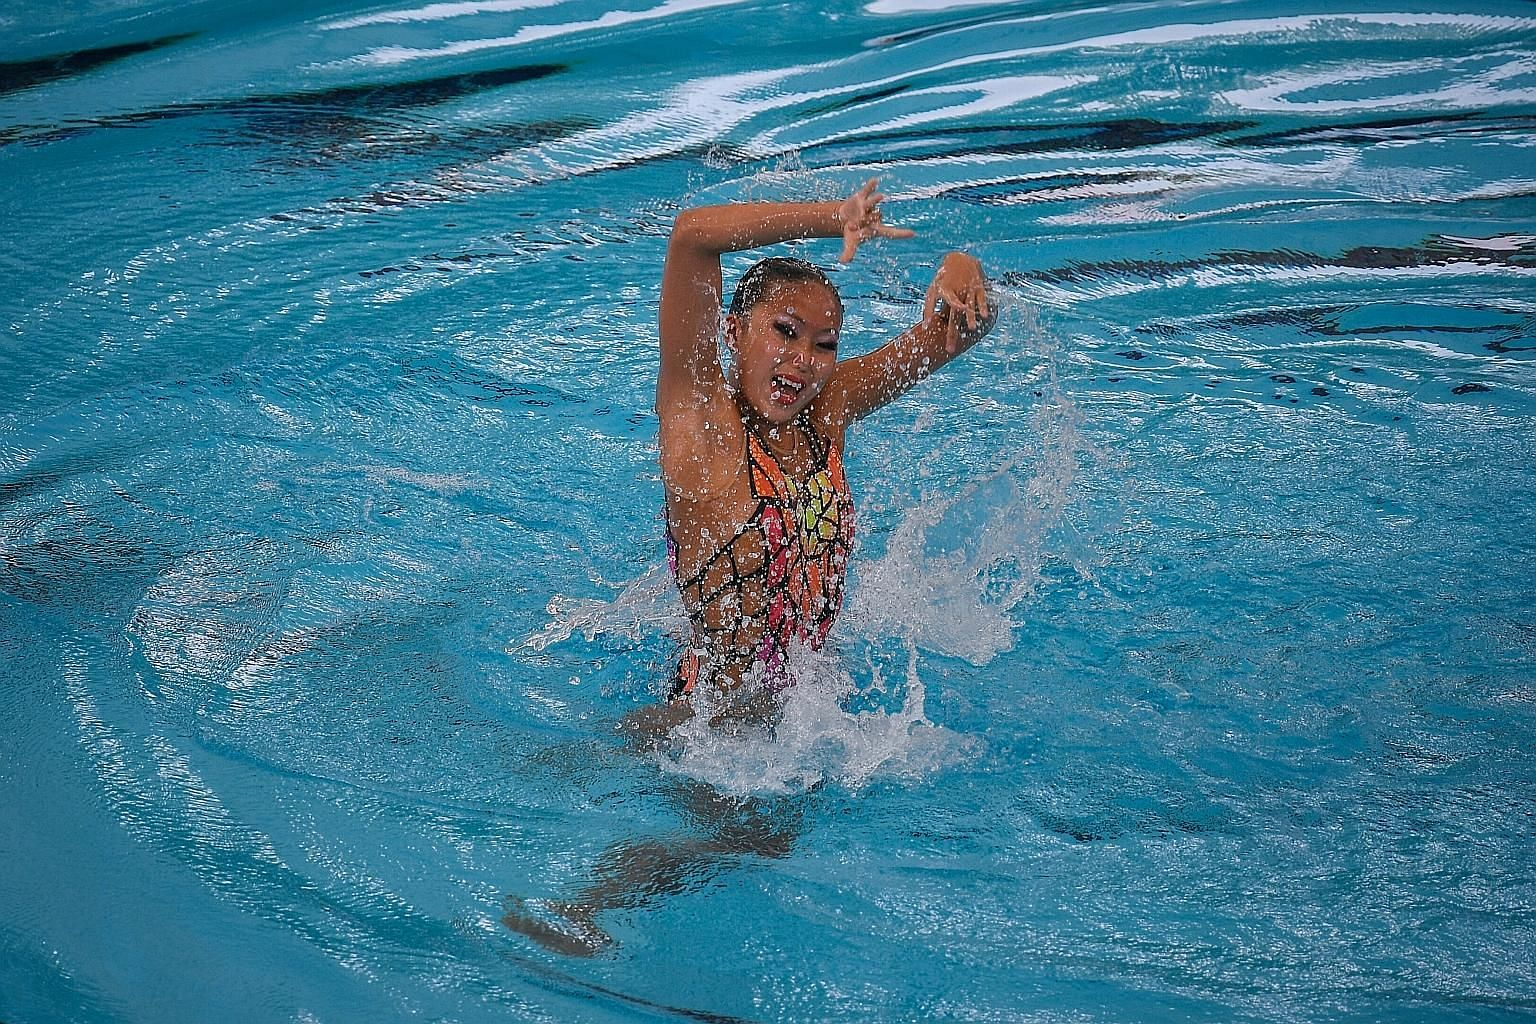 Debbie Soh in her gold medal-winning synchronised swimming routine. While the 75.0000 was not her best score, it was good enough.